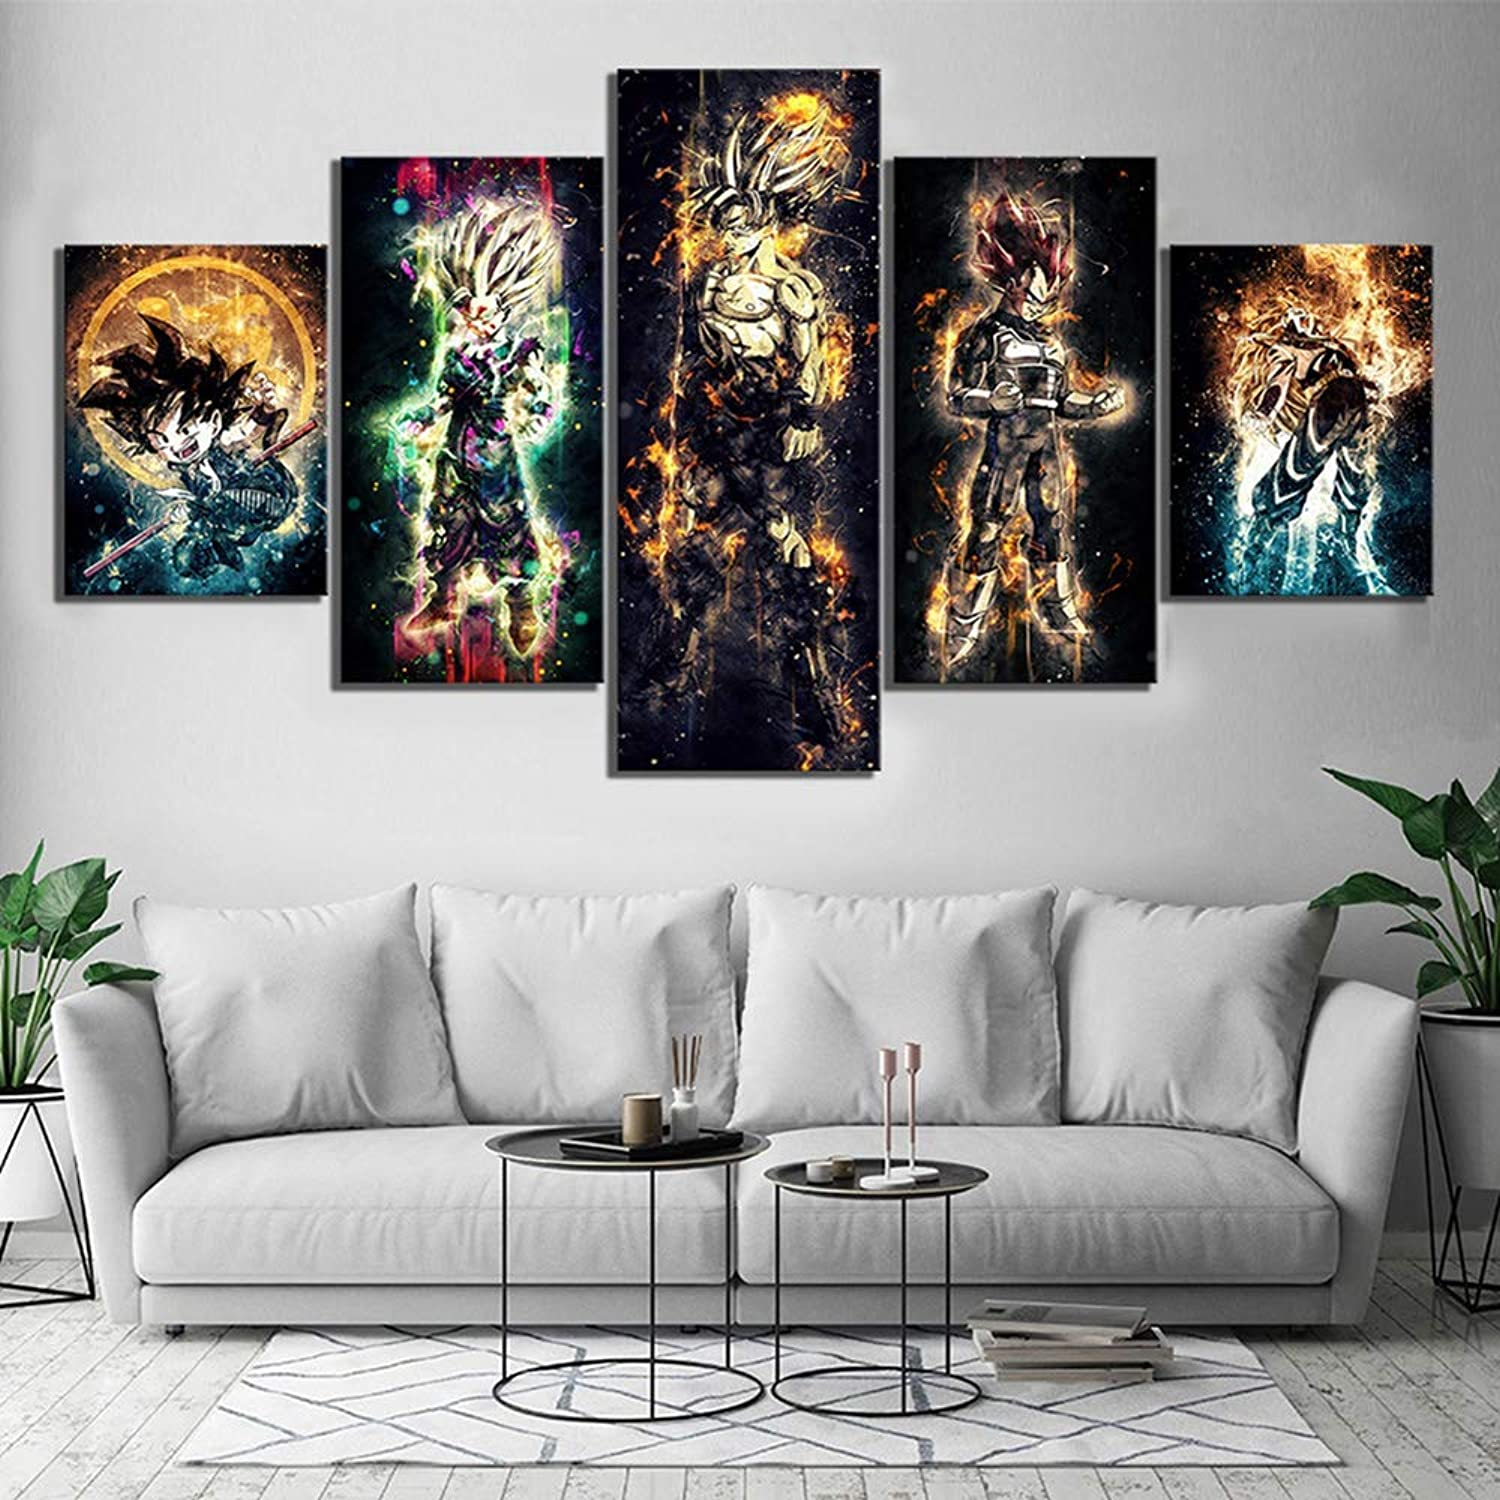 HD Prints Wall Art Canvas Paintings 5 Panel Dragon Ball Pictures Home Decoration Animation Poster for Living Room